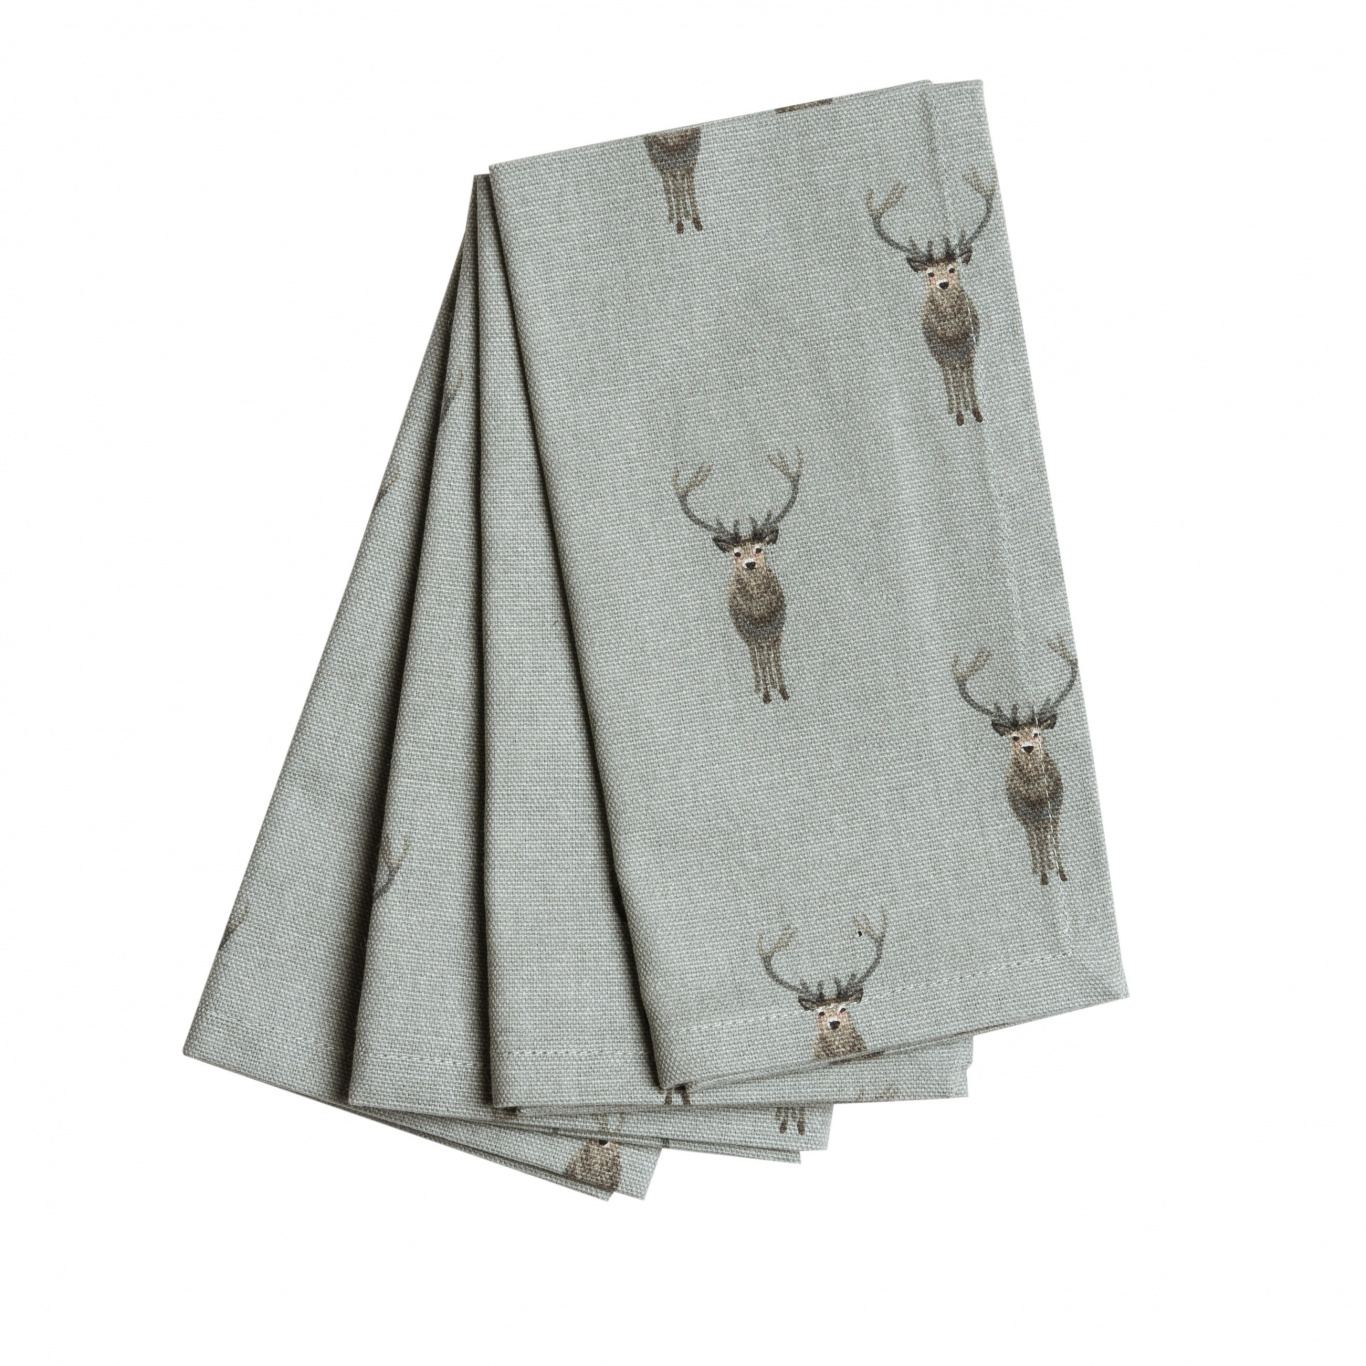 Image of Sophie Allport Highland Stag Napkins Set of 4